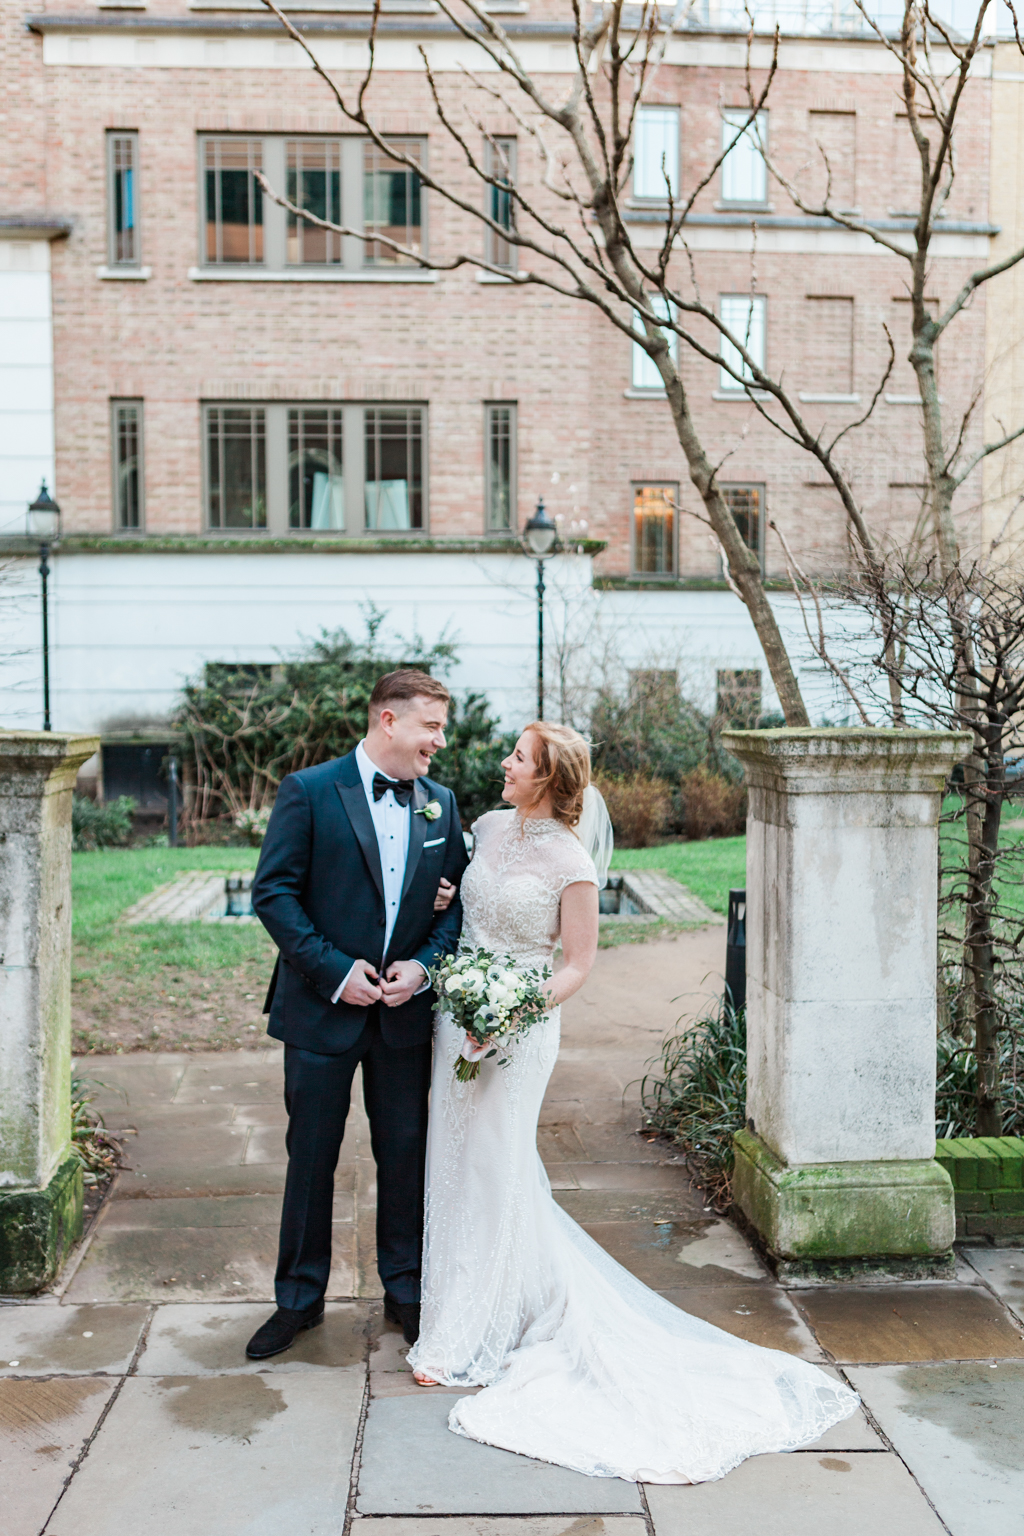 Rebecca & Tom's gloriously glamorous Andaz Hotel wedding, with Amanda Karen Photography (13)